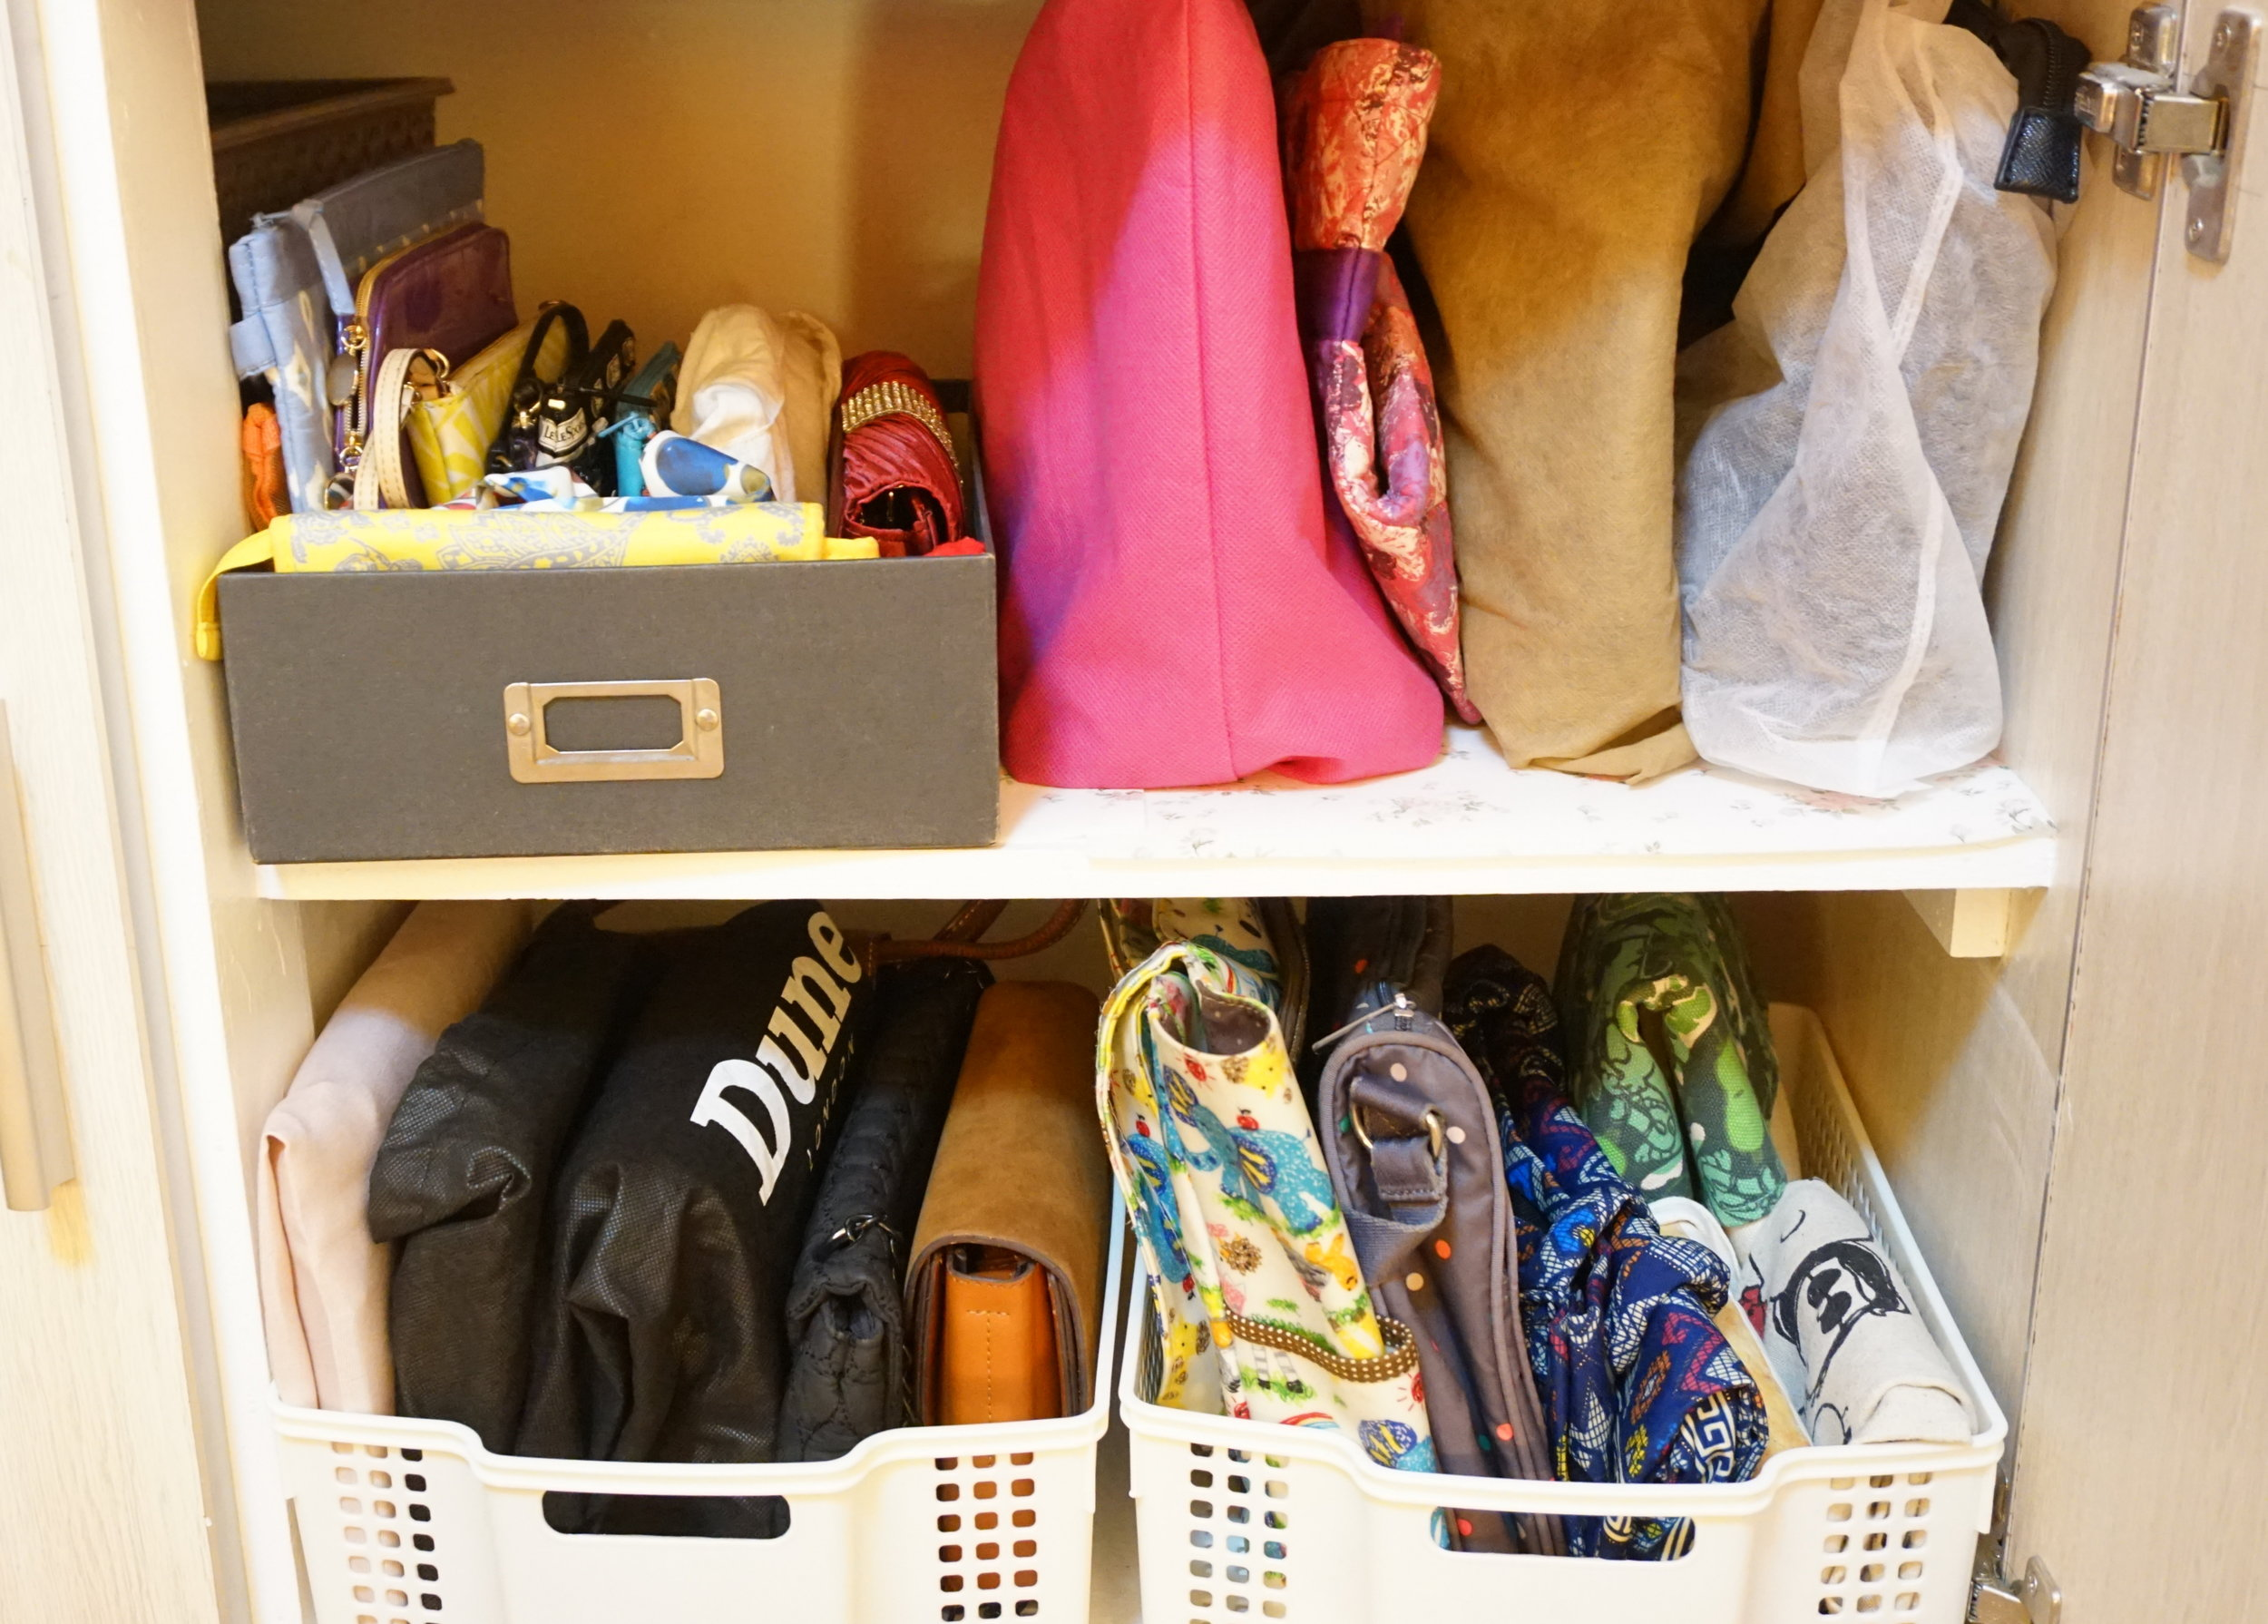 AFTER:  Now, my bags look so much comfortable in this cabinet!